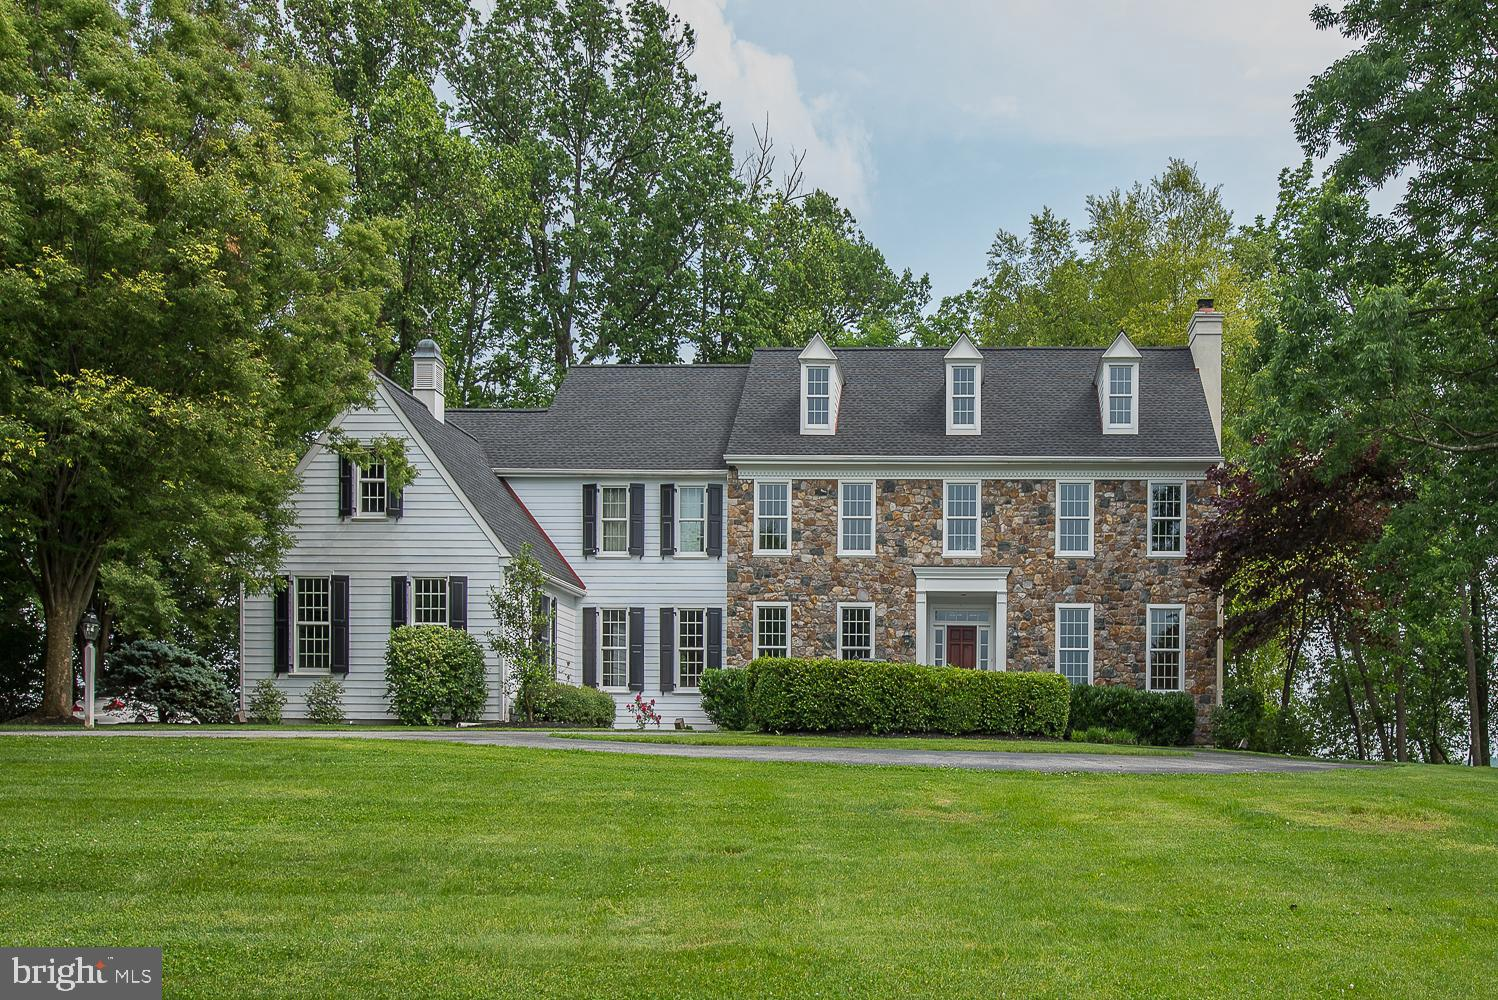 925 COPES LANE, WEST CHESTER, PA 19380